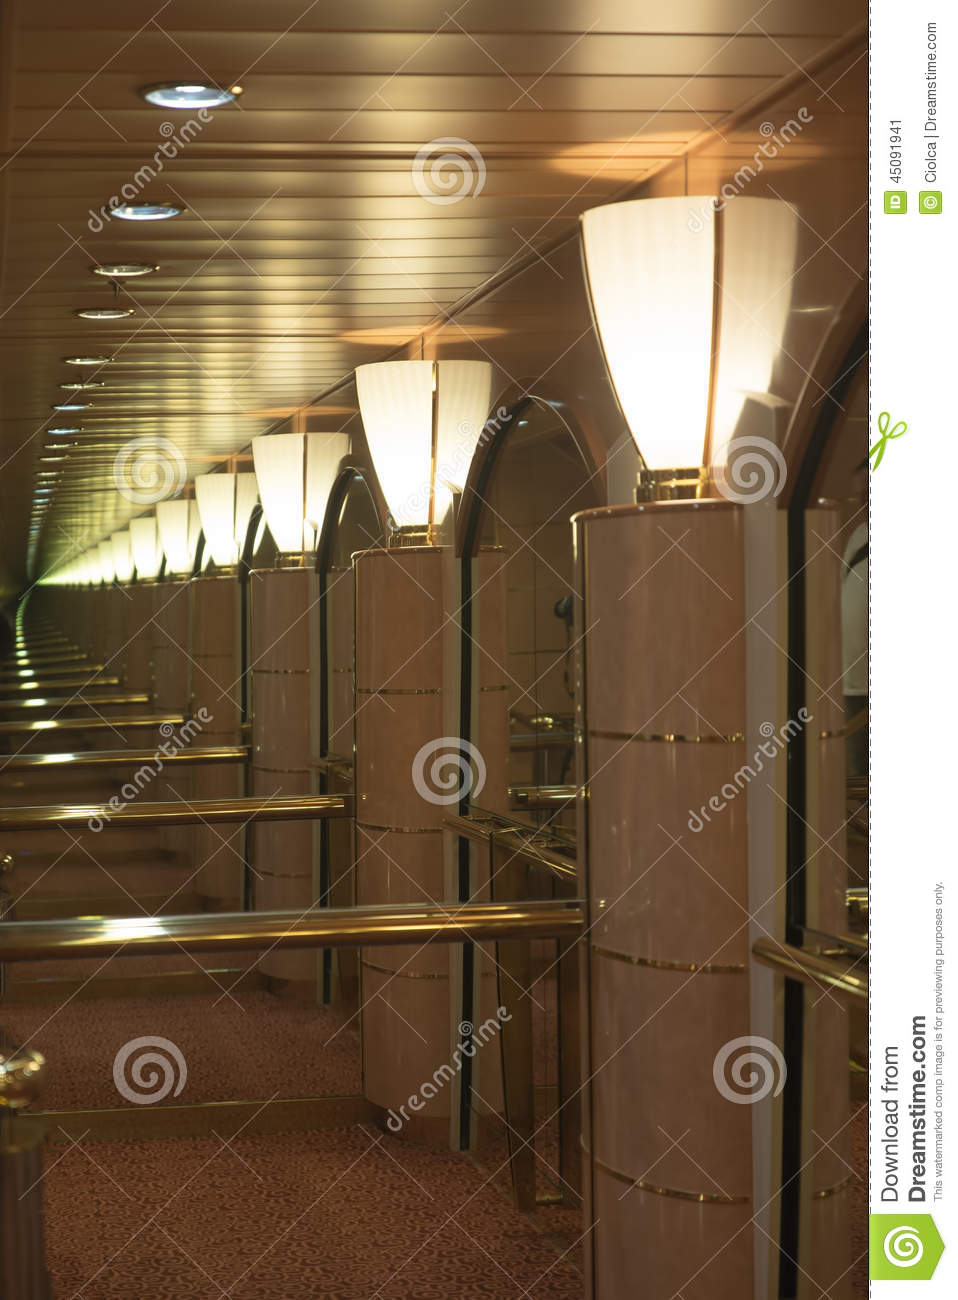 Endless Mirror Stock Image Image Of Entrance Lamp